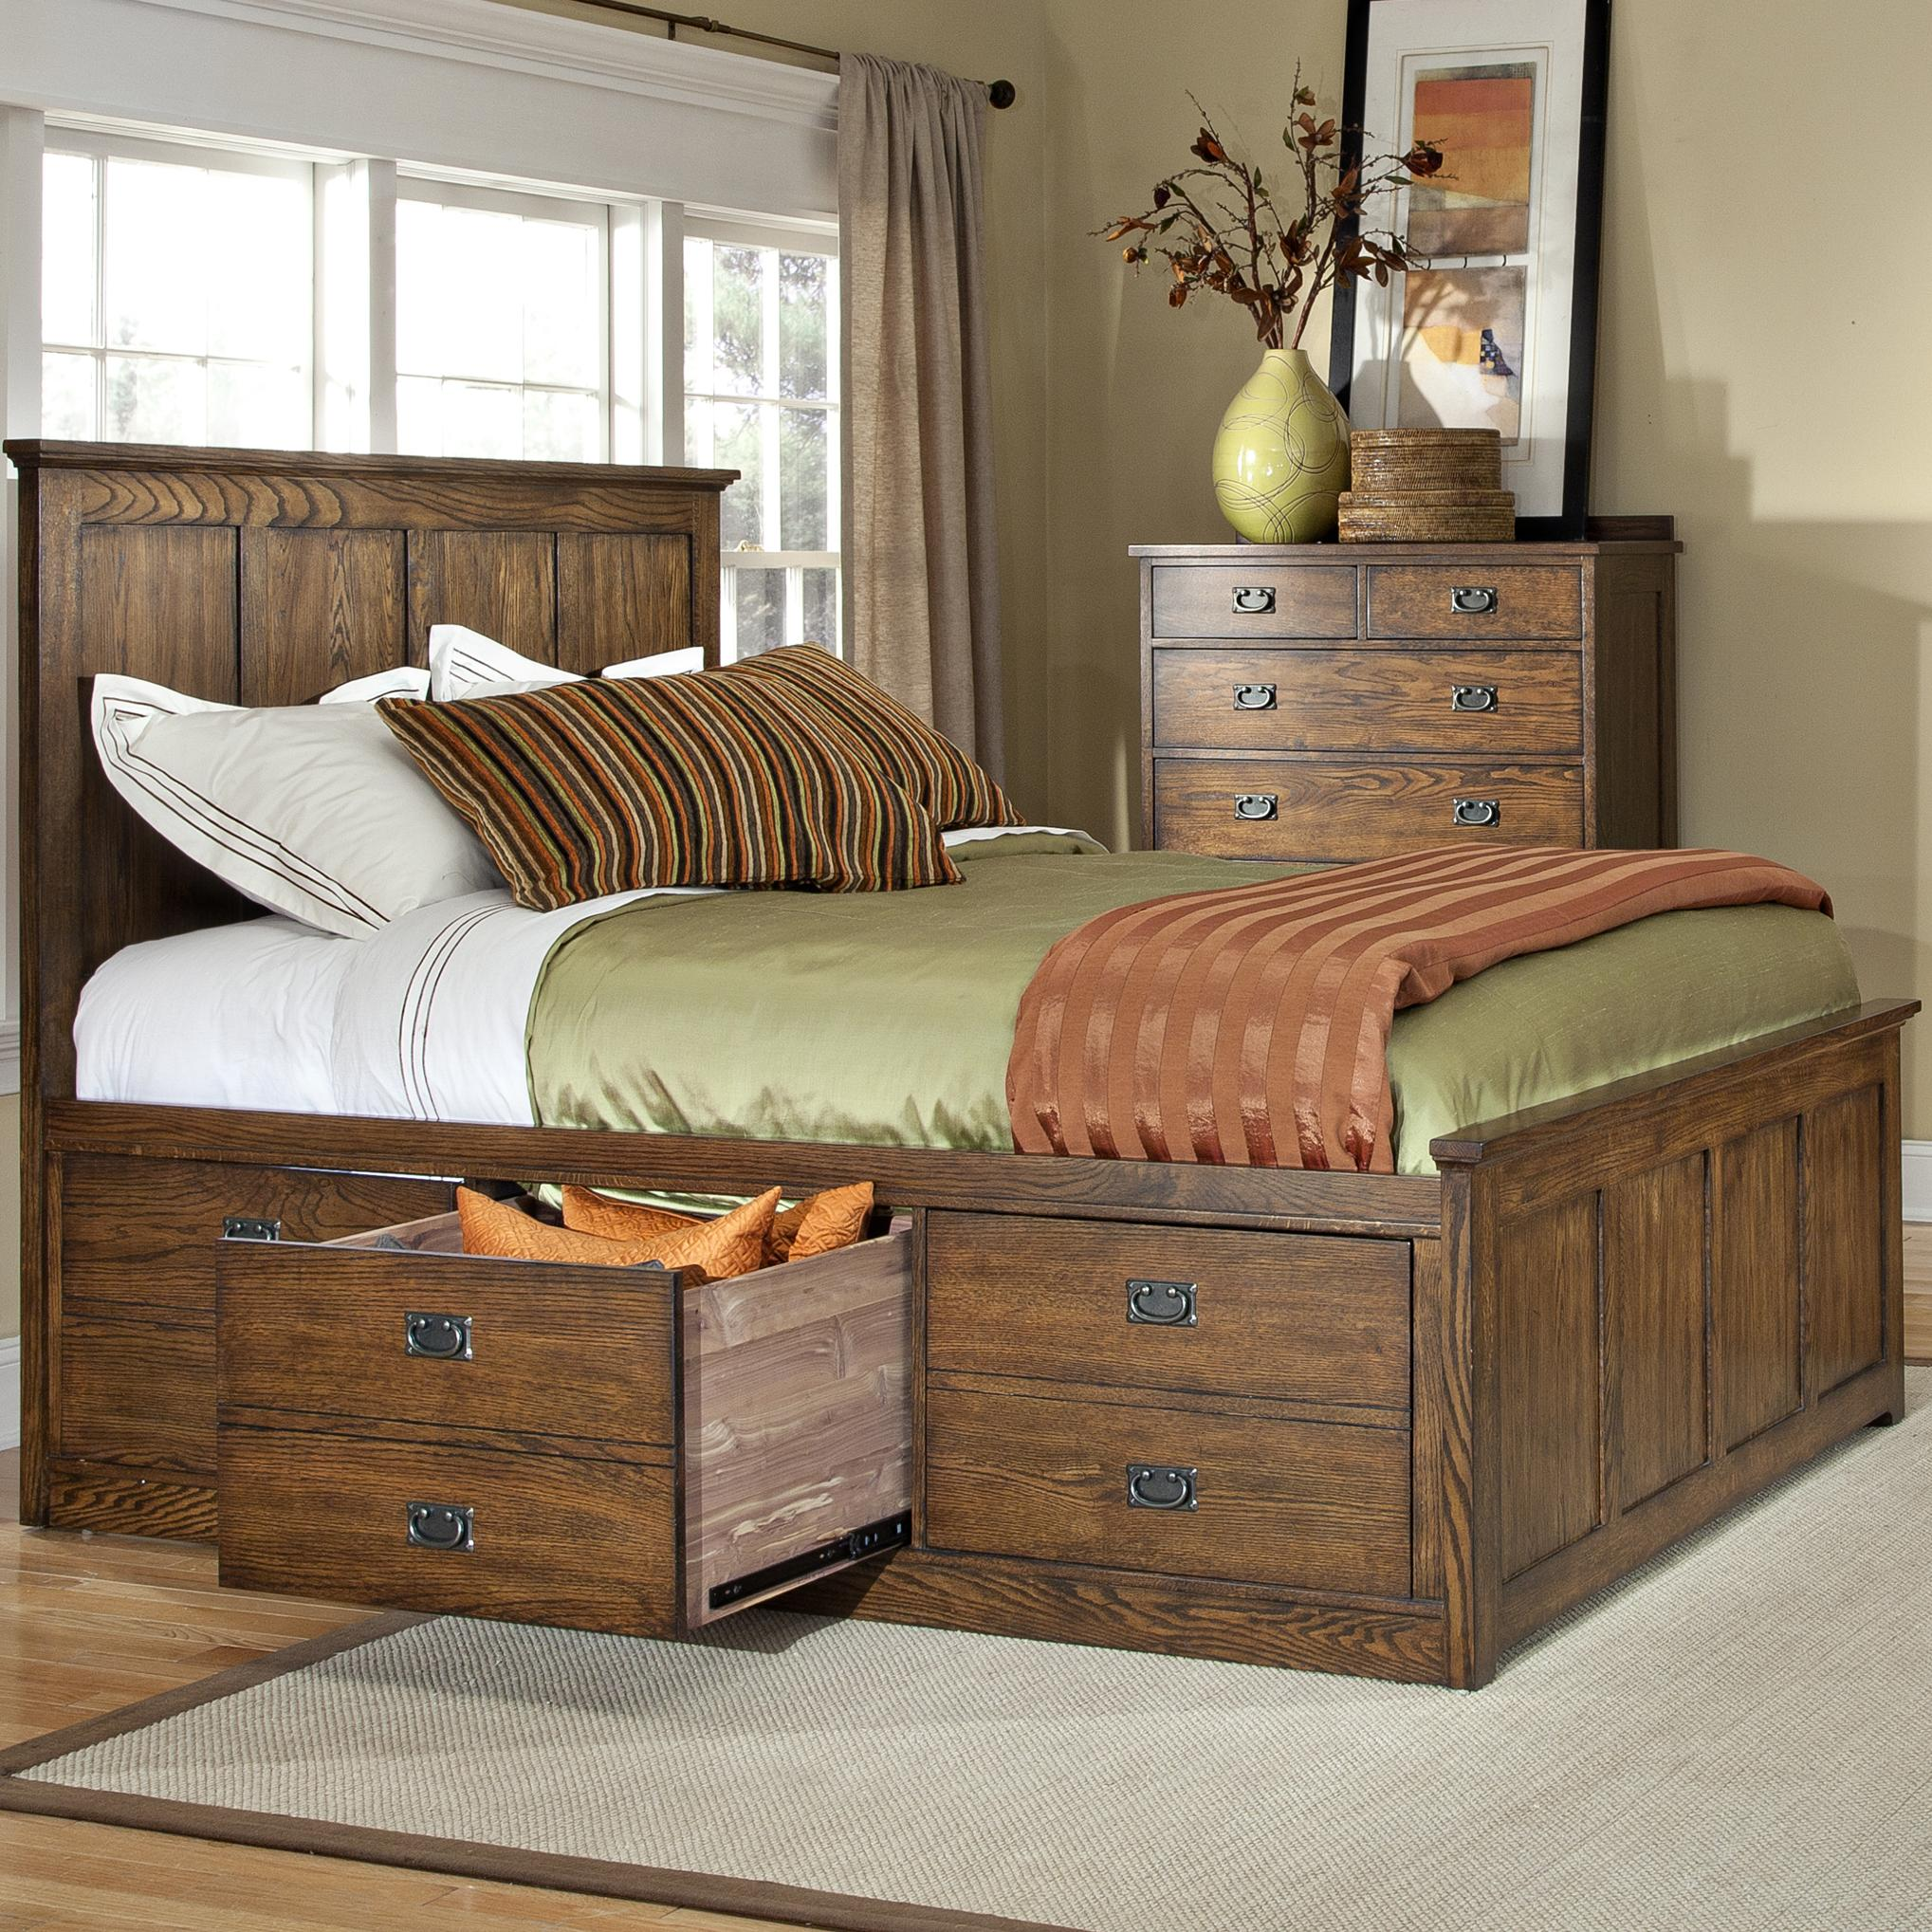 Queen Size Under Bed Storage Drawers